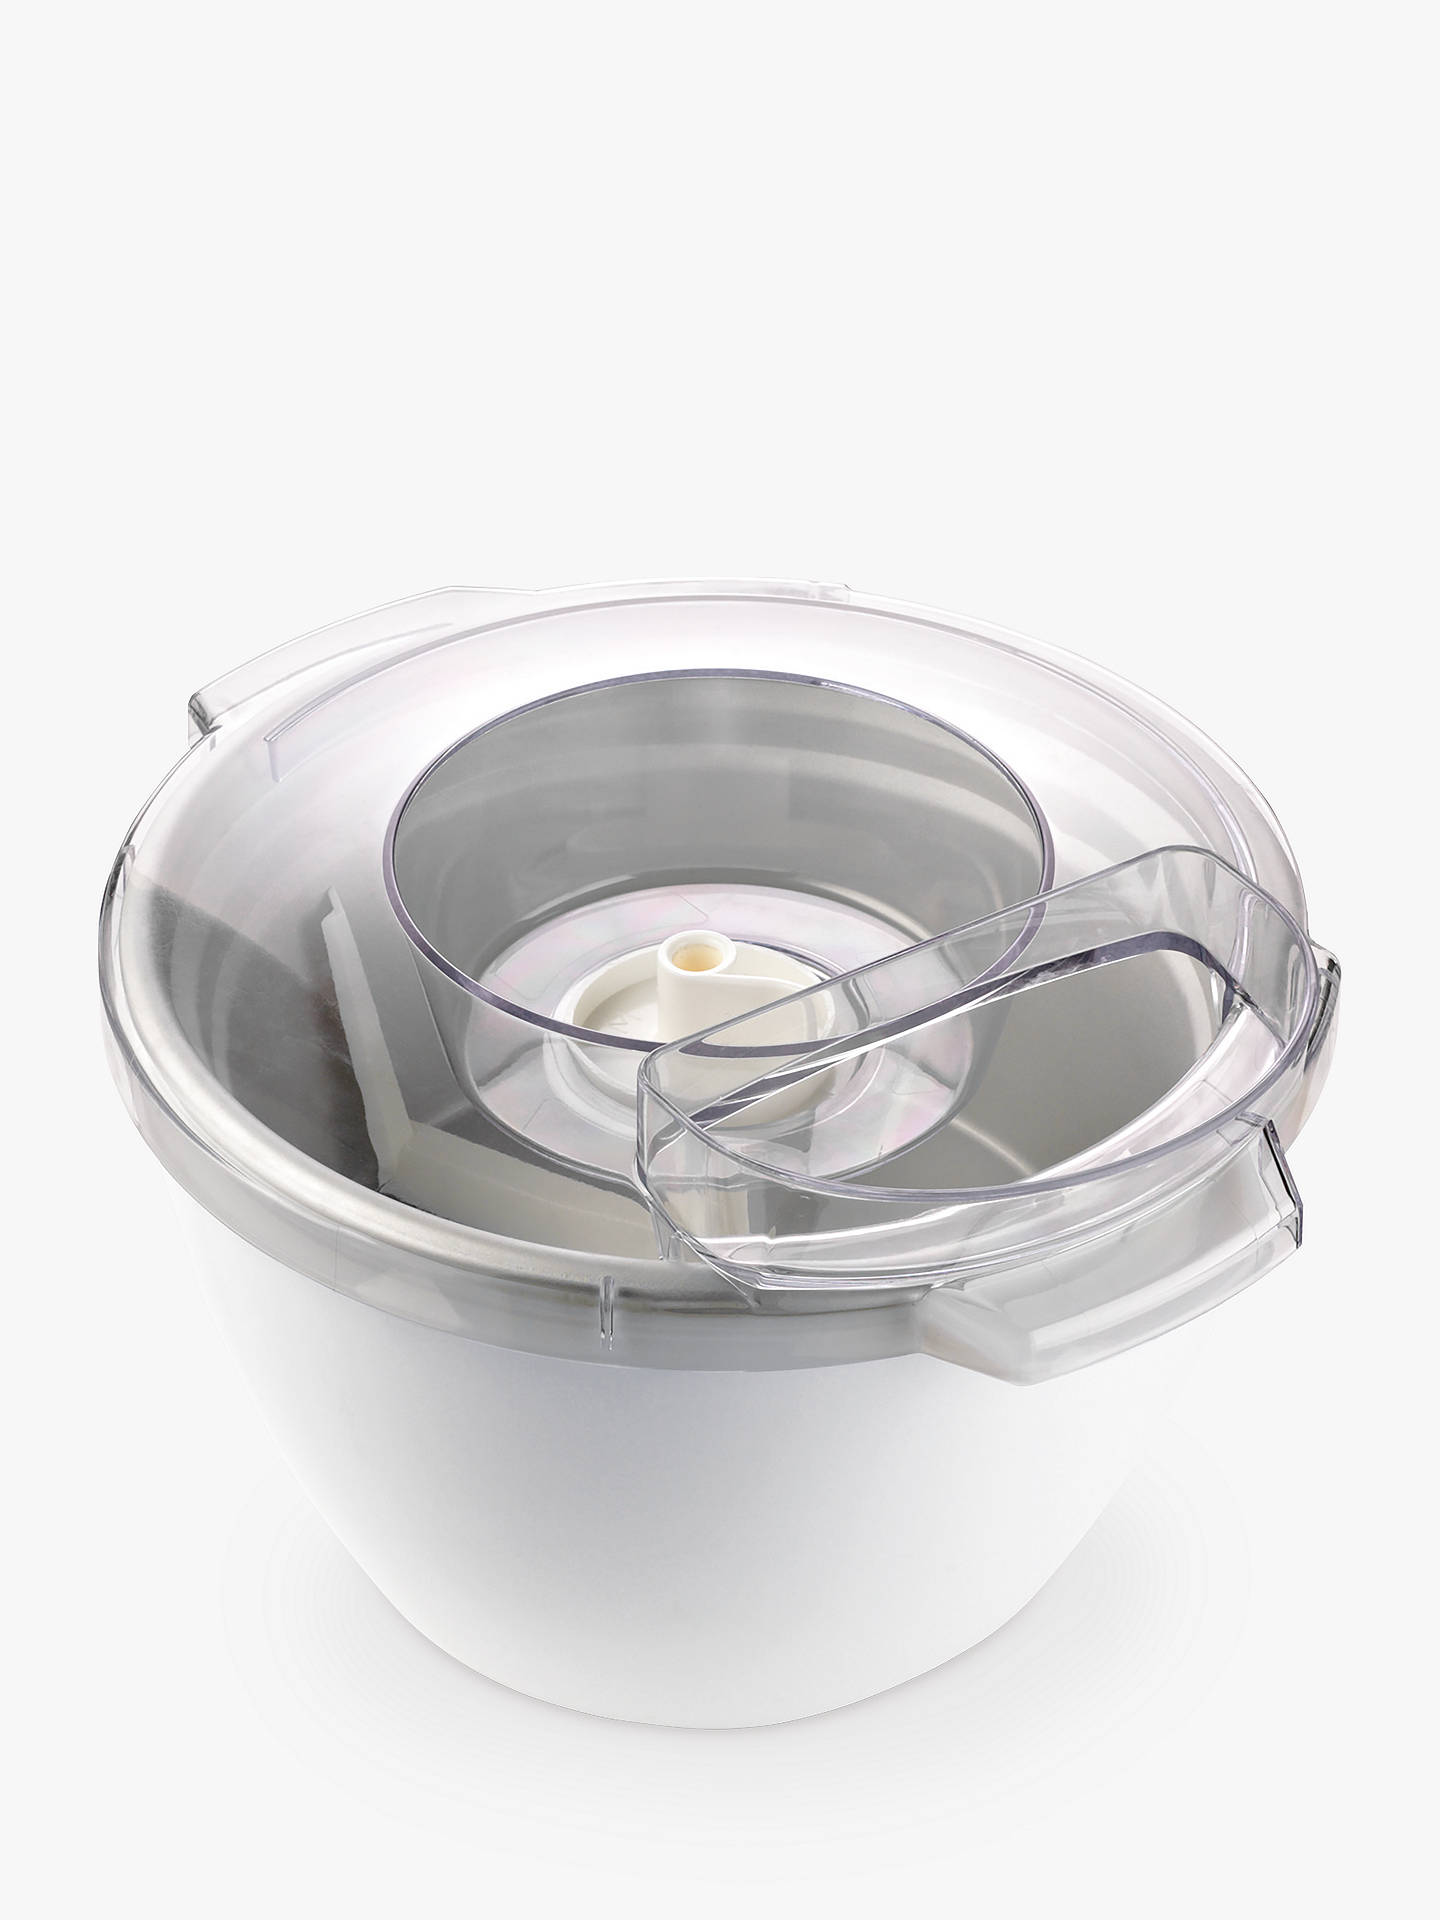 BuyKenwood Chef AT956A Ice Cream Maker Attachment Online at johnlewis.com